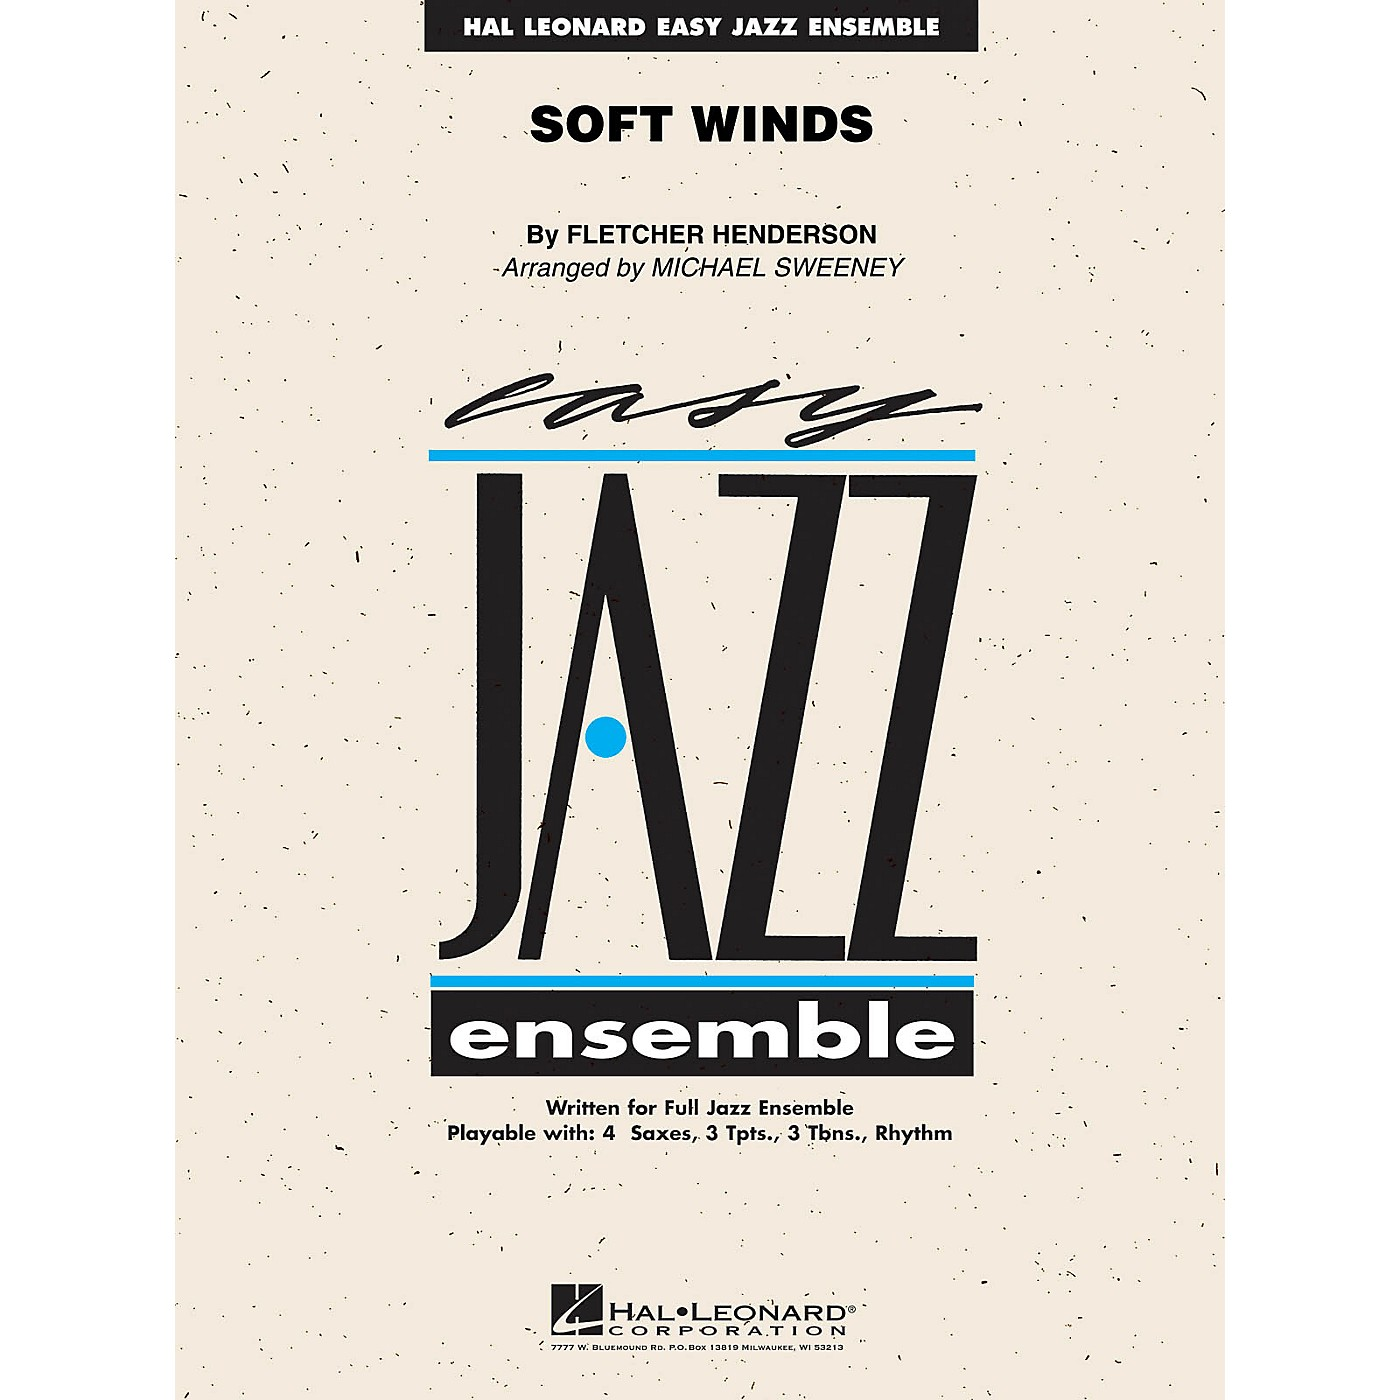 Hal Leonard Soft Winds Jazz Band Level 2 Arranged by Michael Sweeney thumbnail